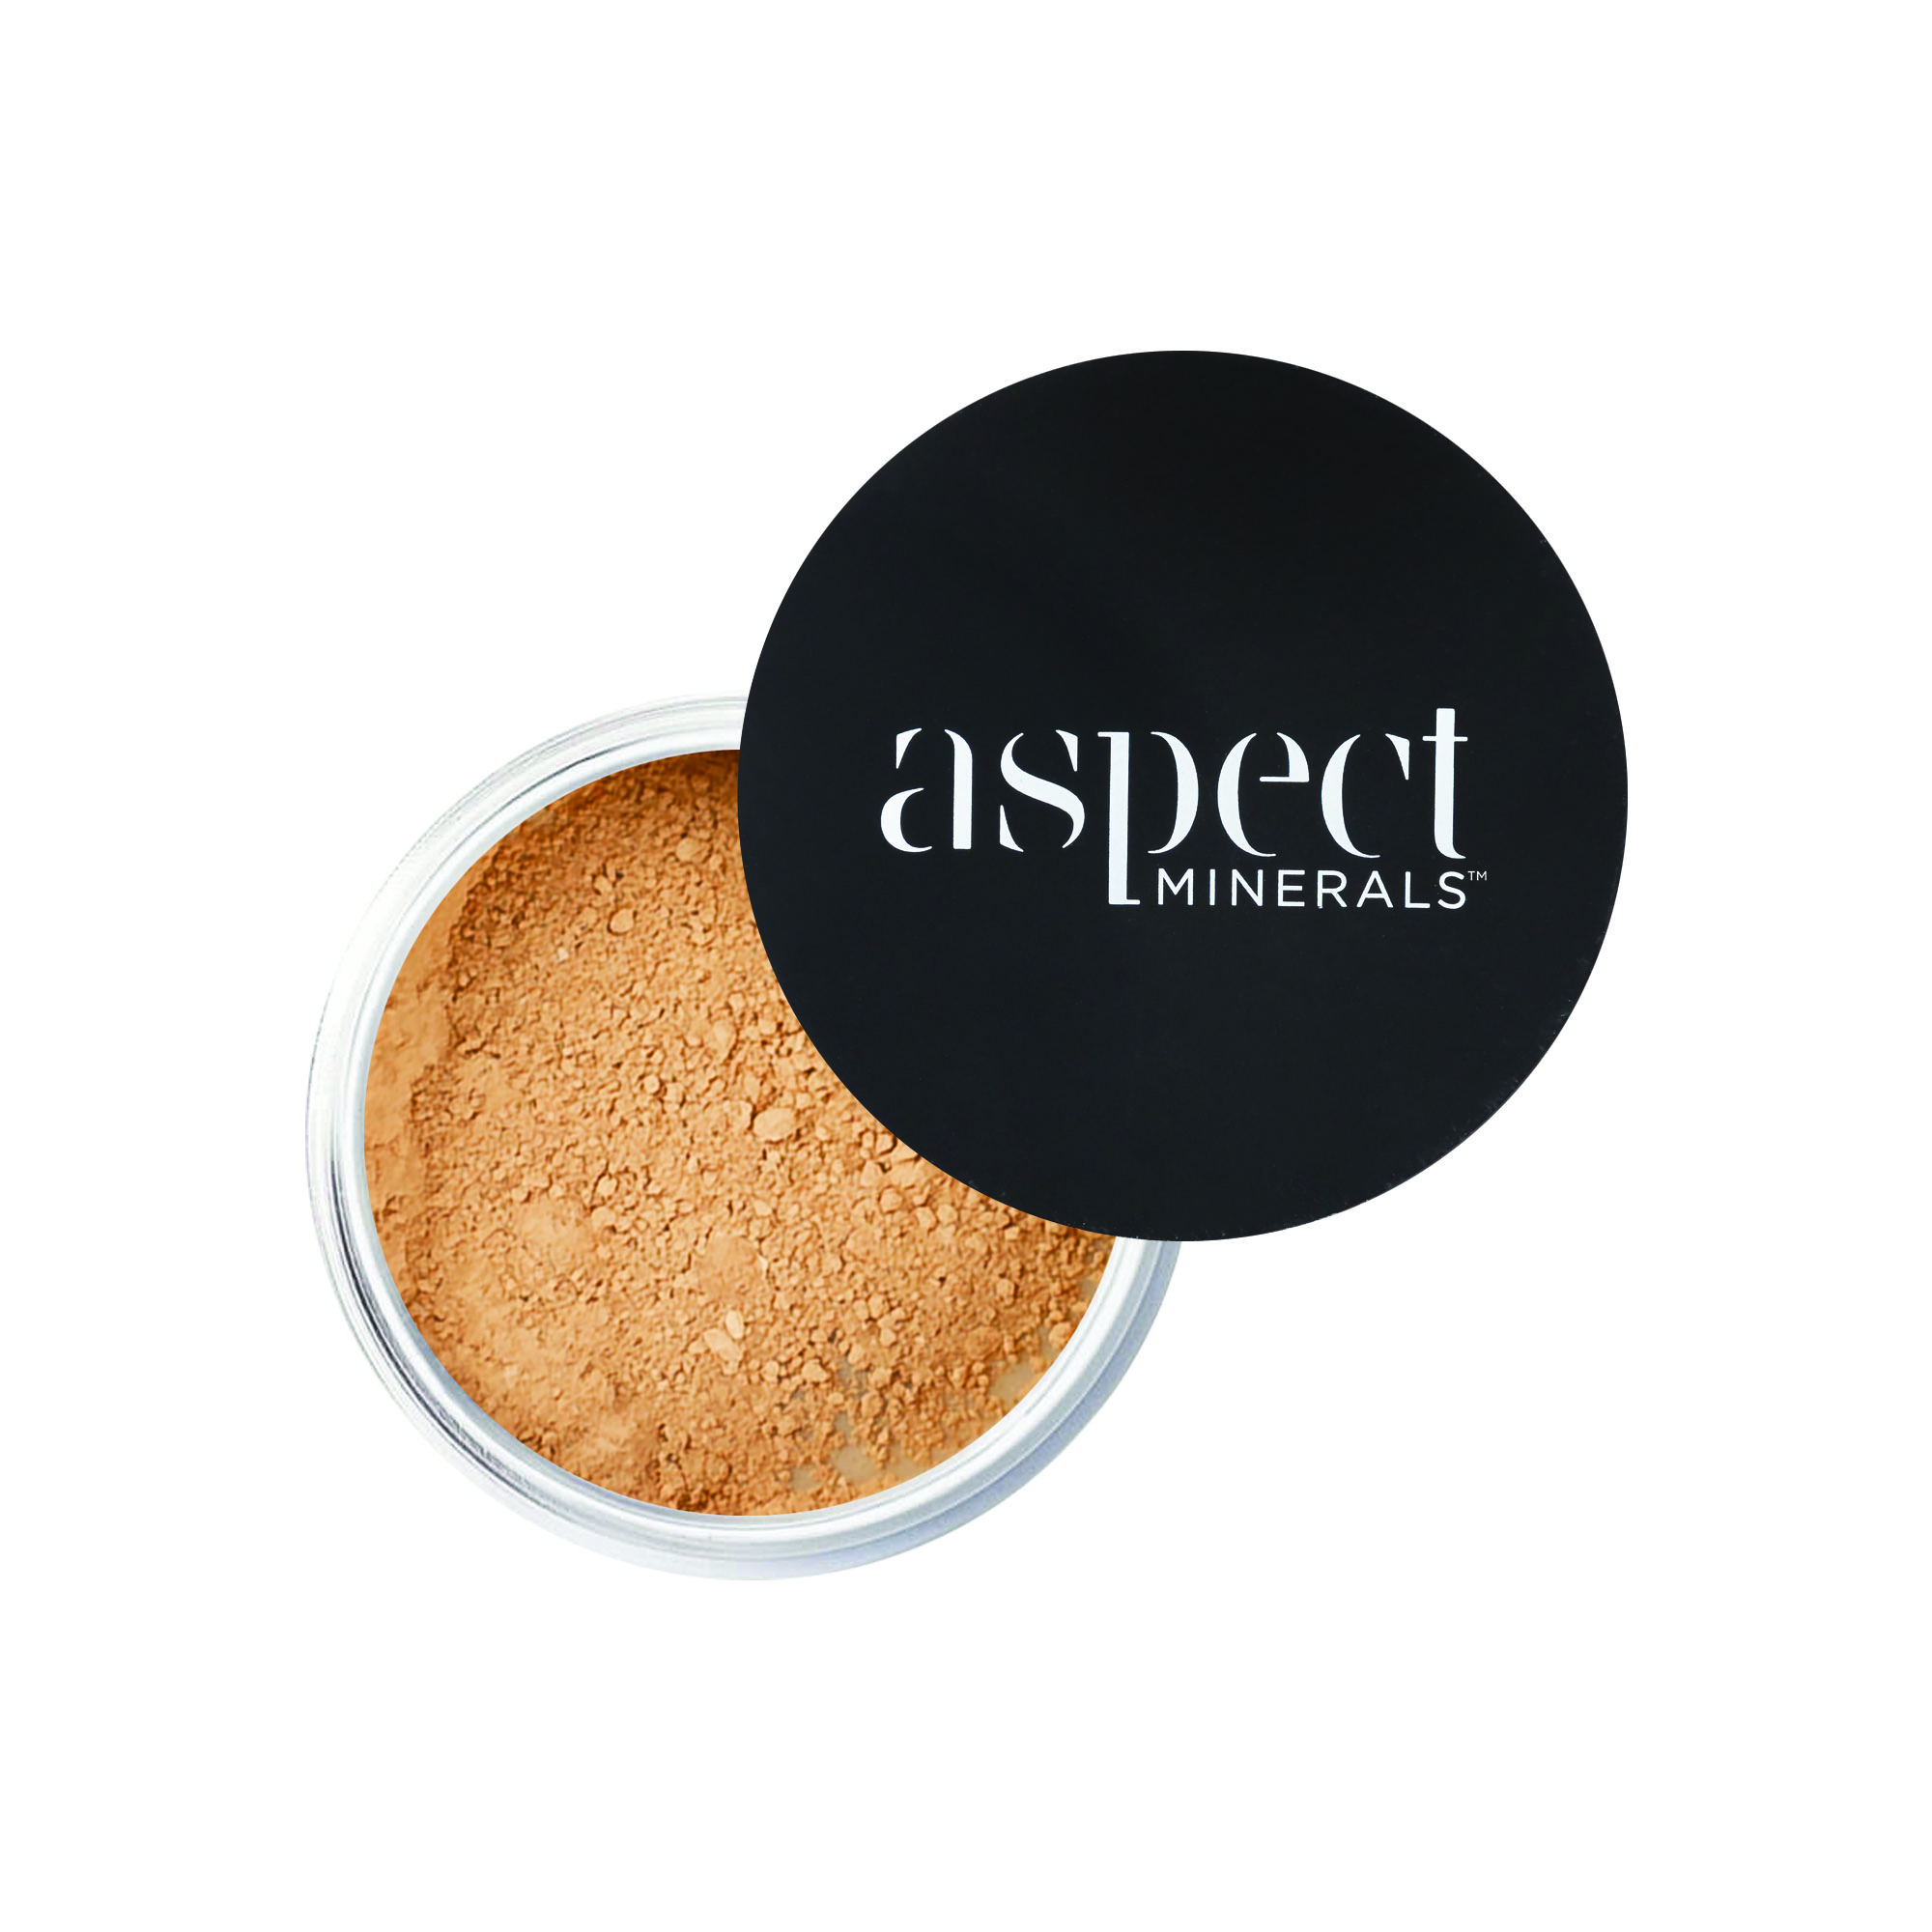 Aspect Minerals Powder One Product Image